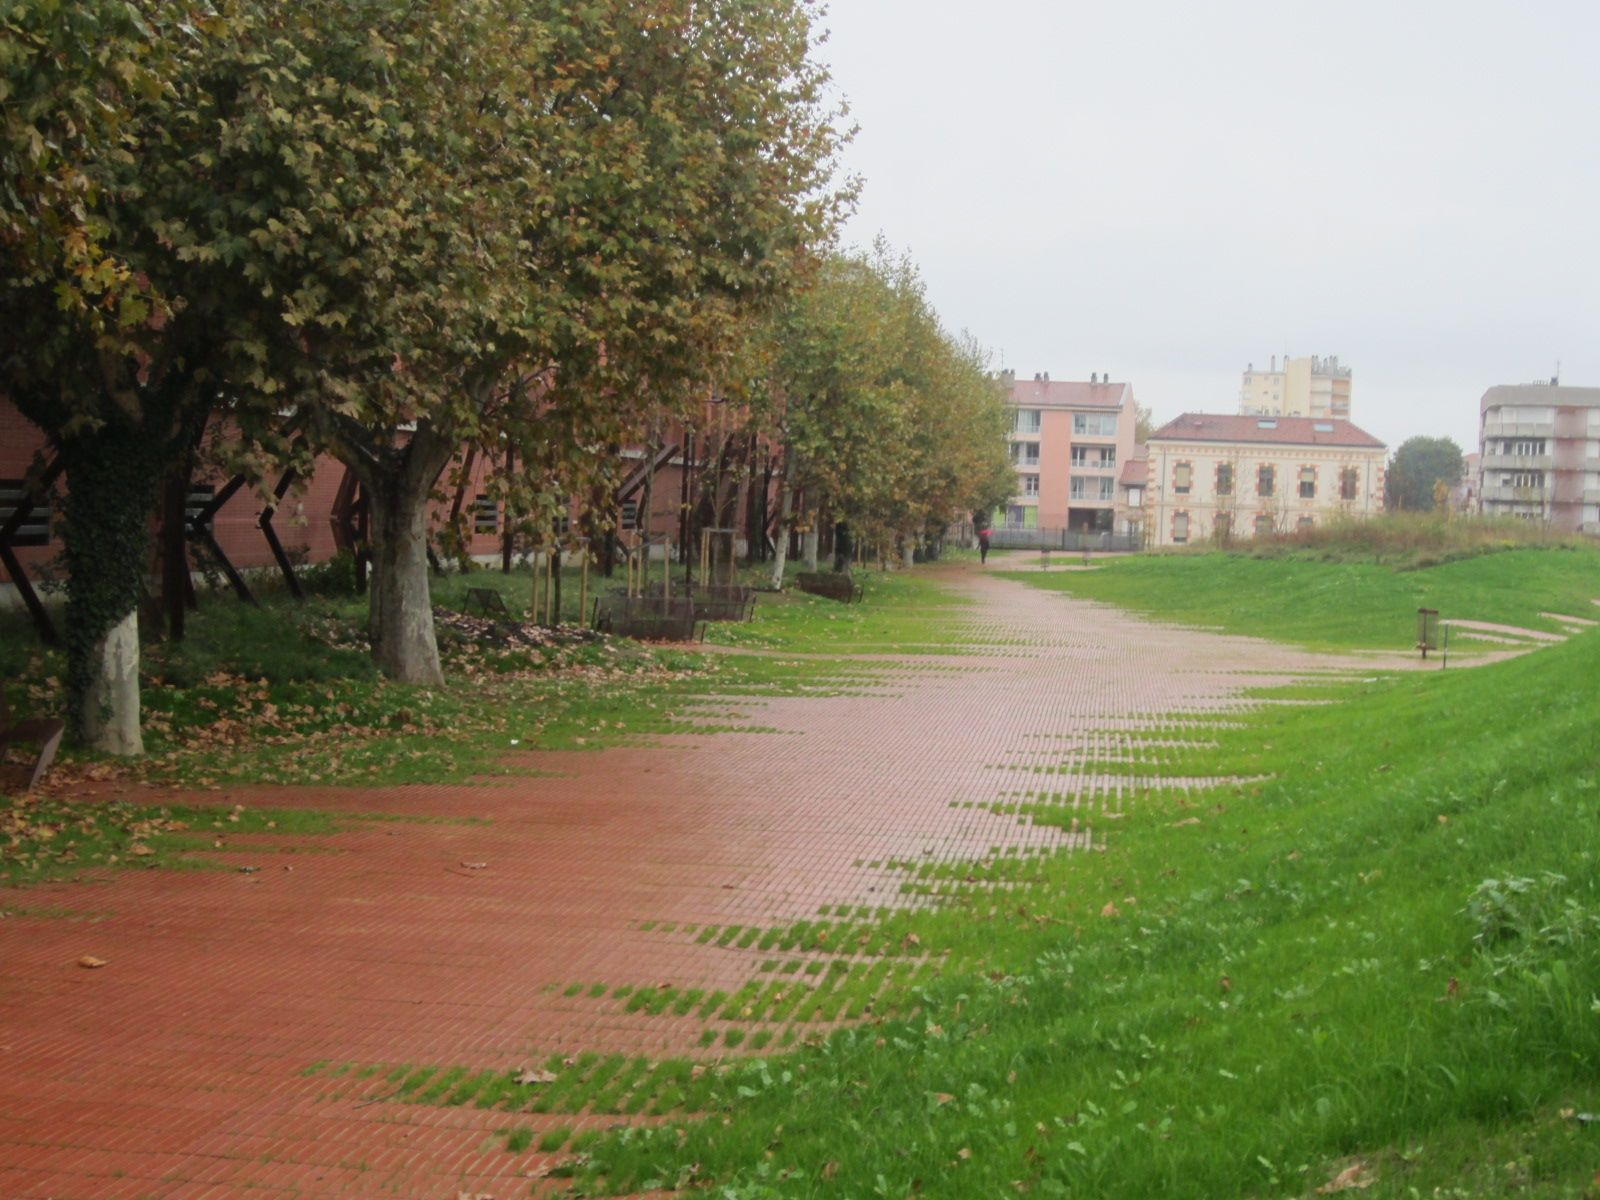 Flexbrick jardin niel toulouse france by agence for Agence de paysage toulouse